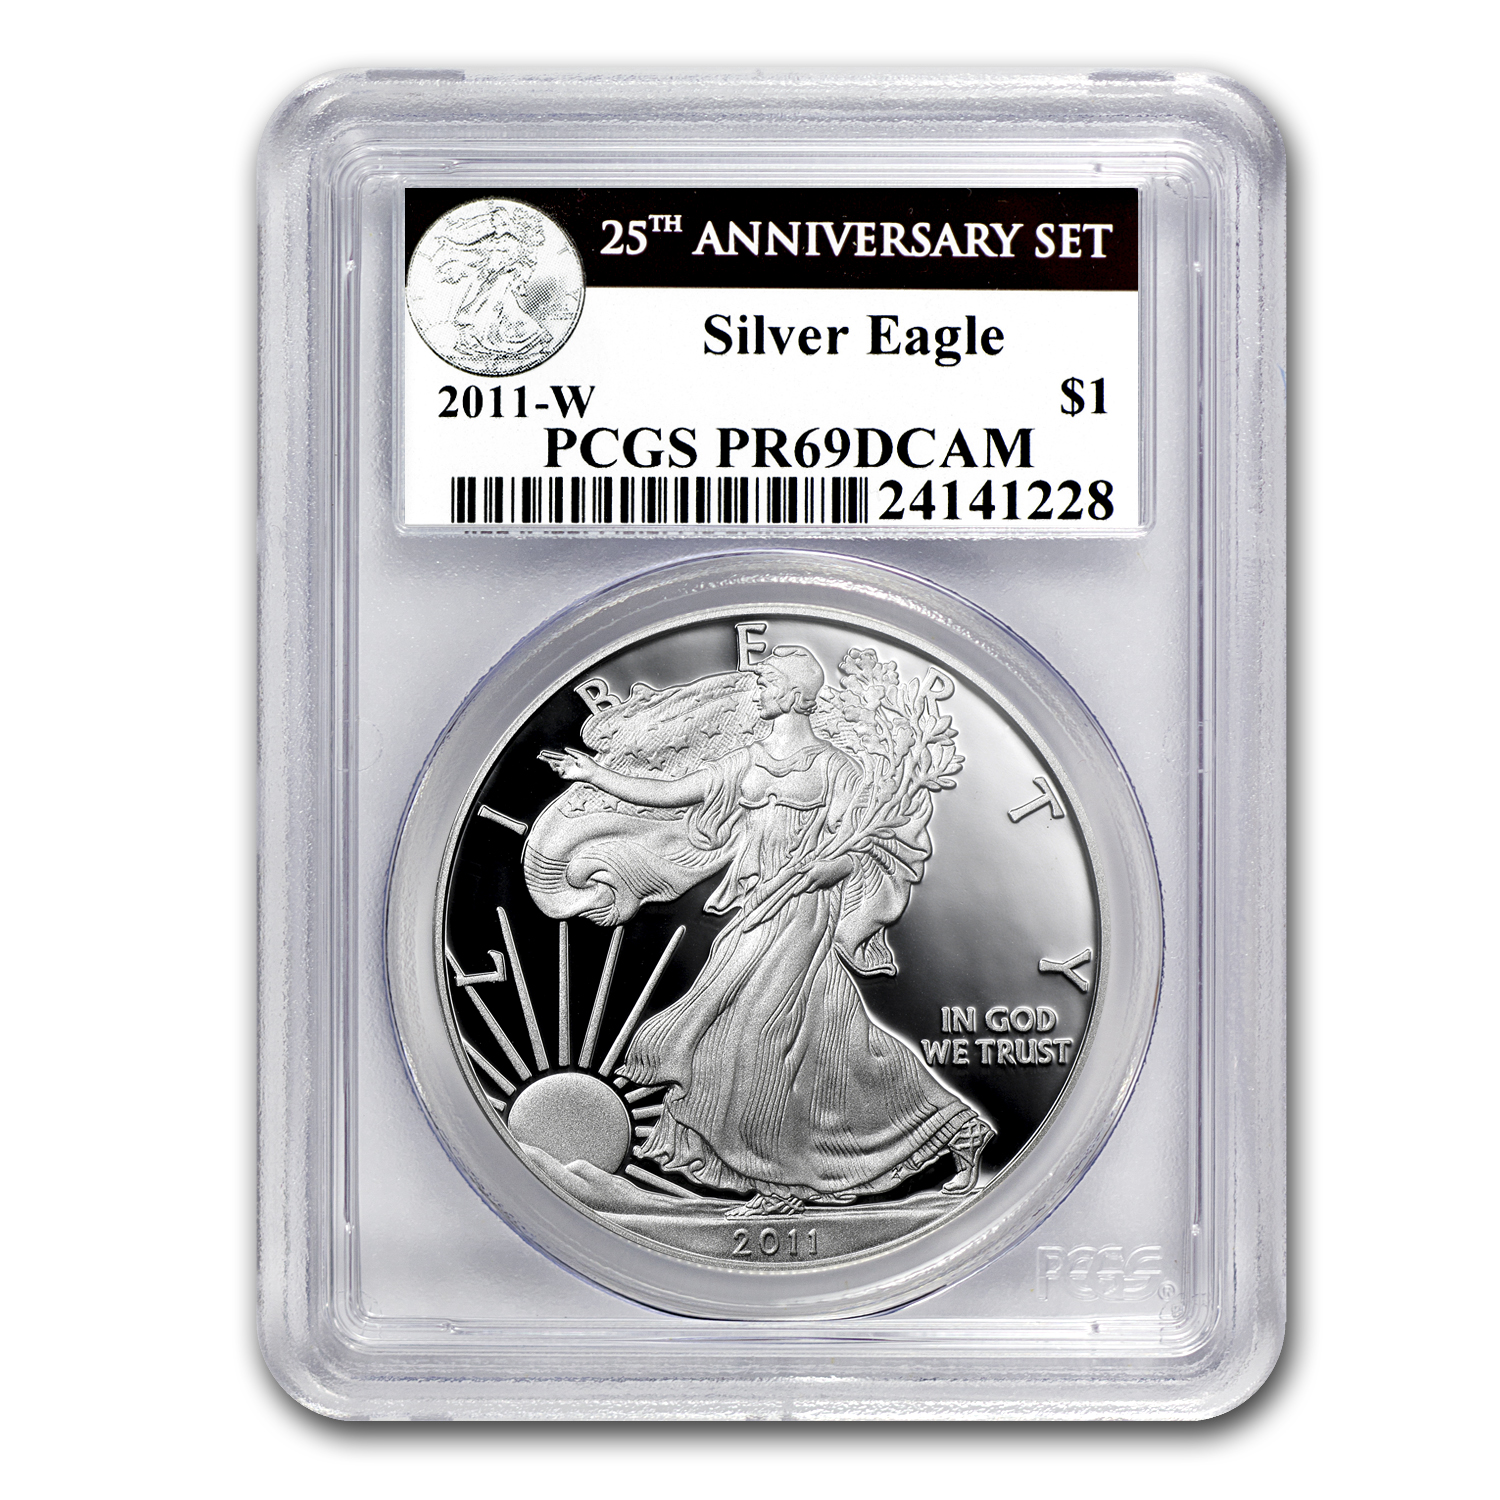 2011-W Proof Silver Eagle 25th Anniversary PR-69 PCGS Black Label